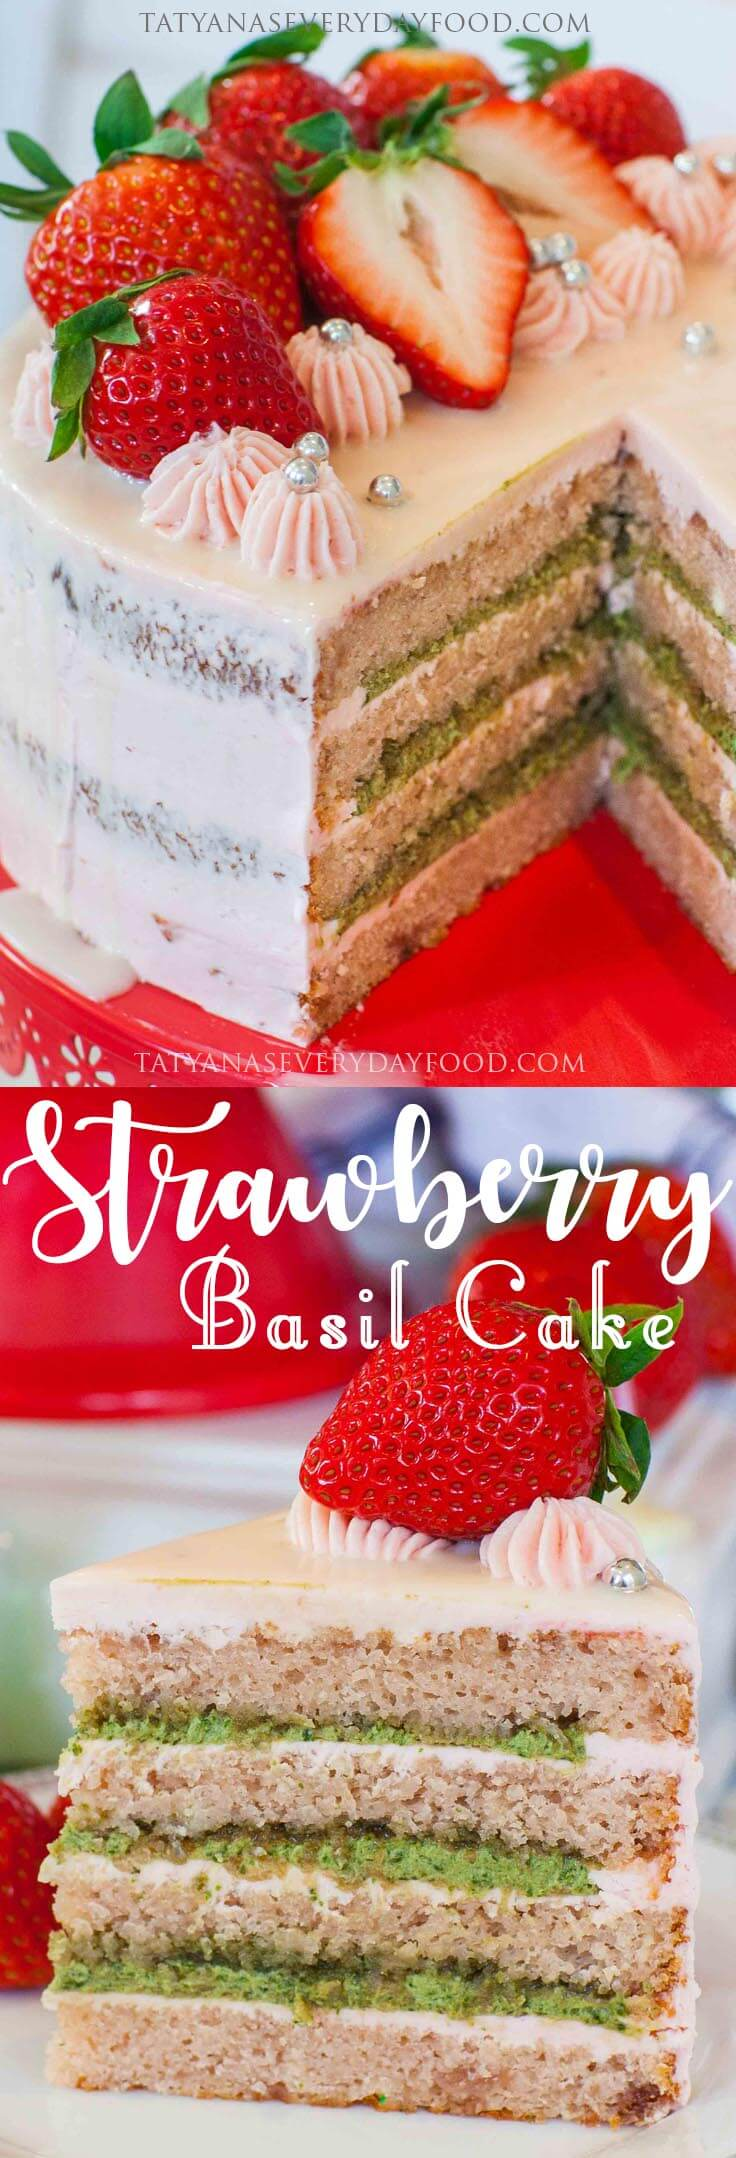 Strawberry Basil Cake with video recipe #ValentinesDay